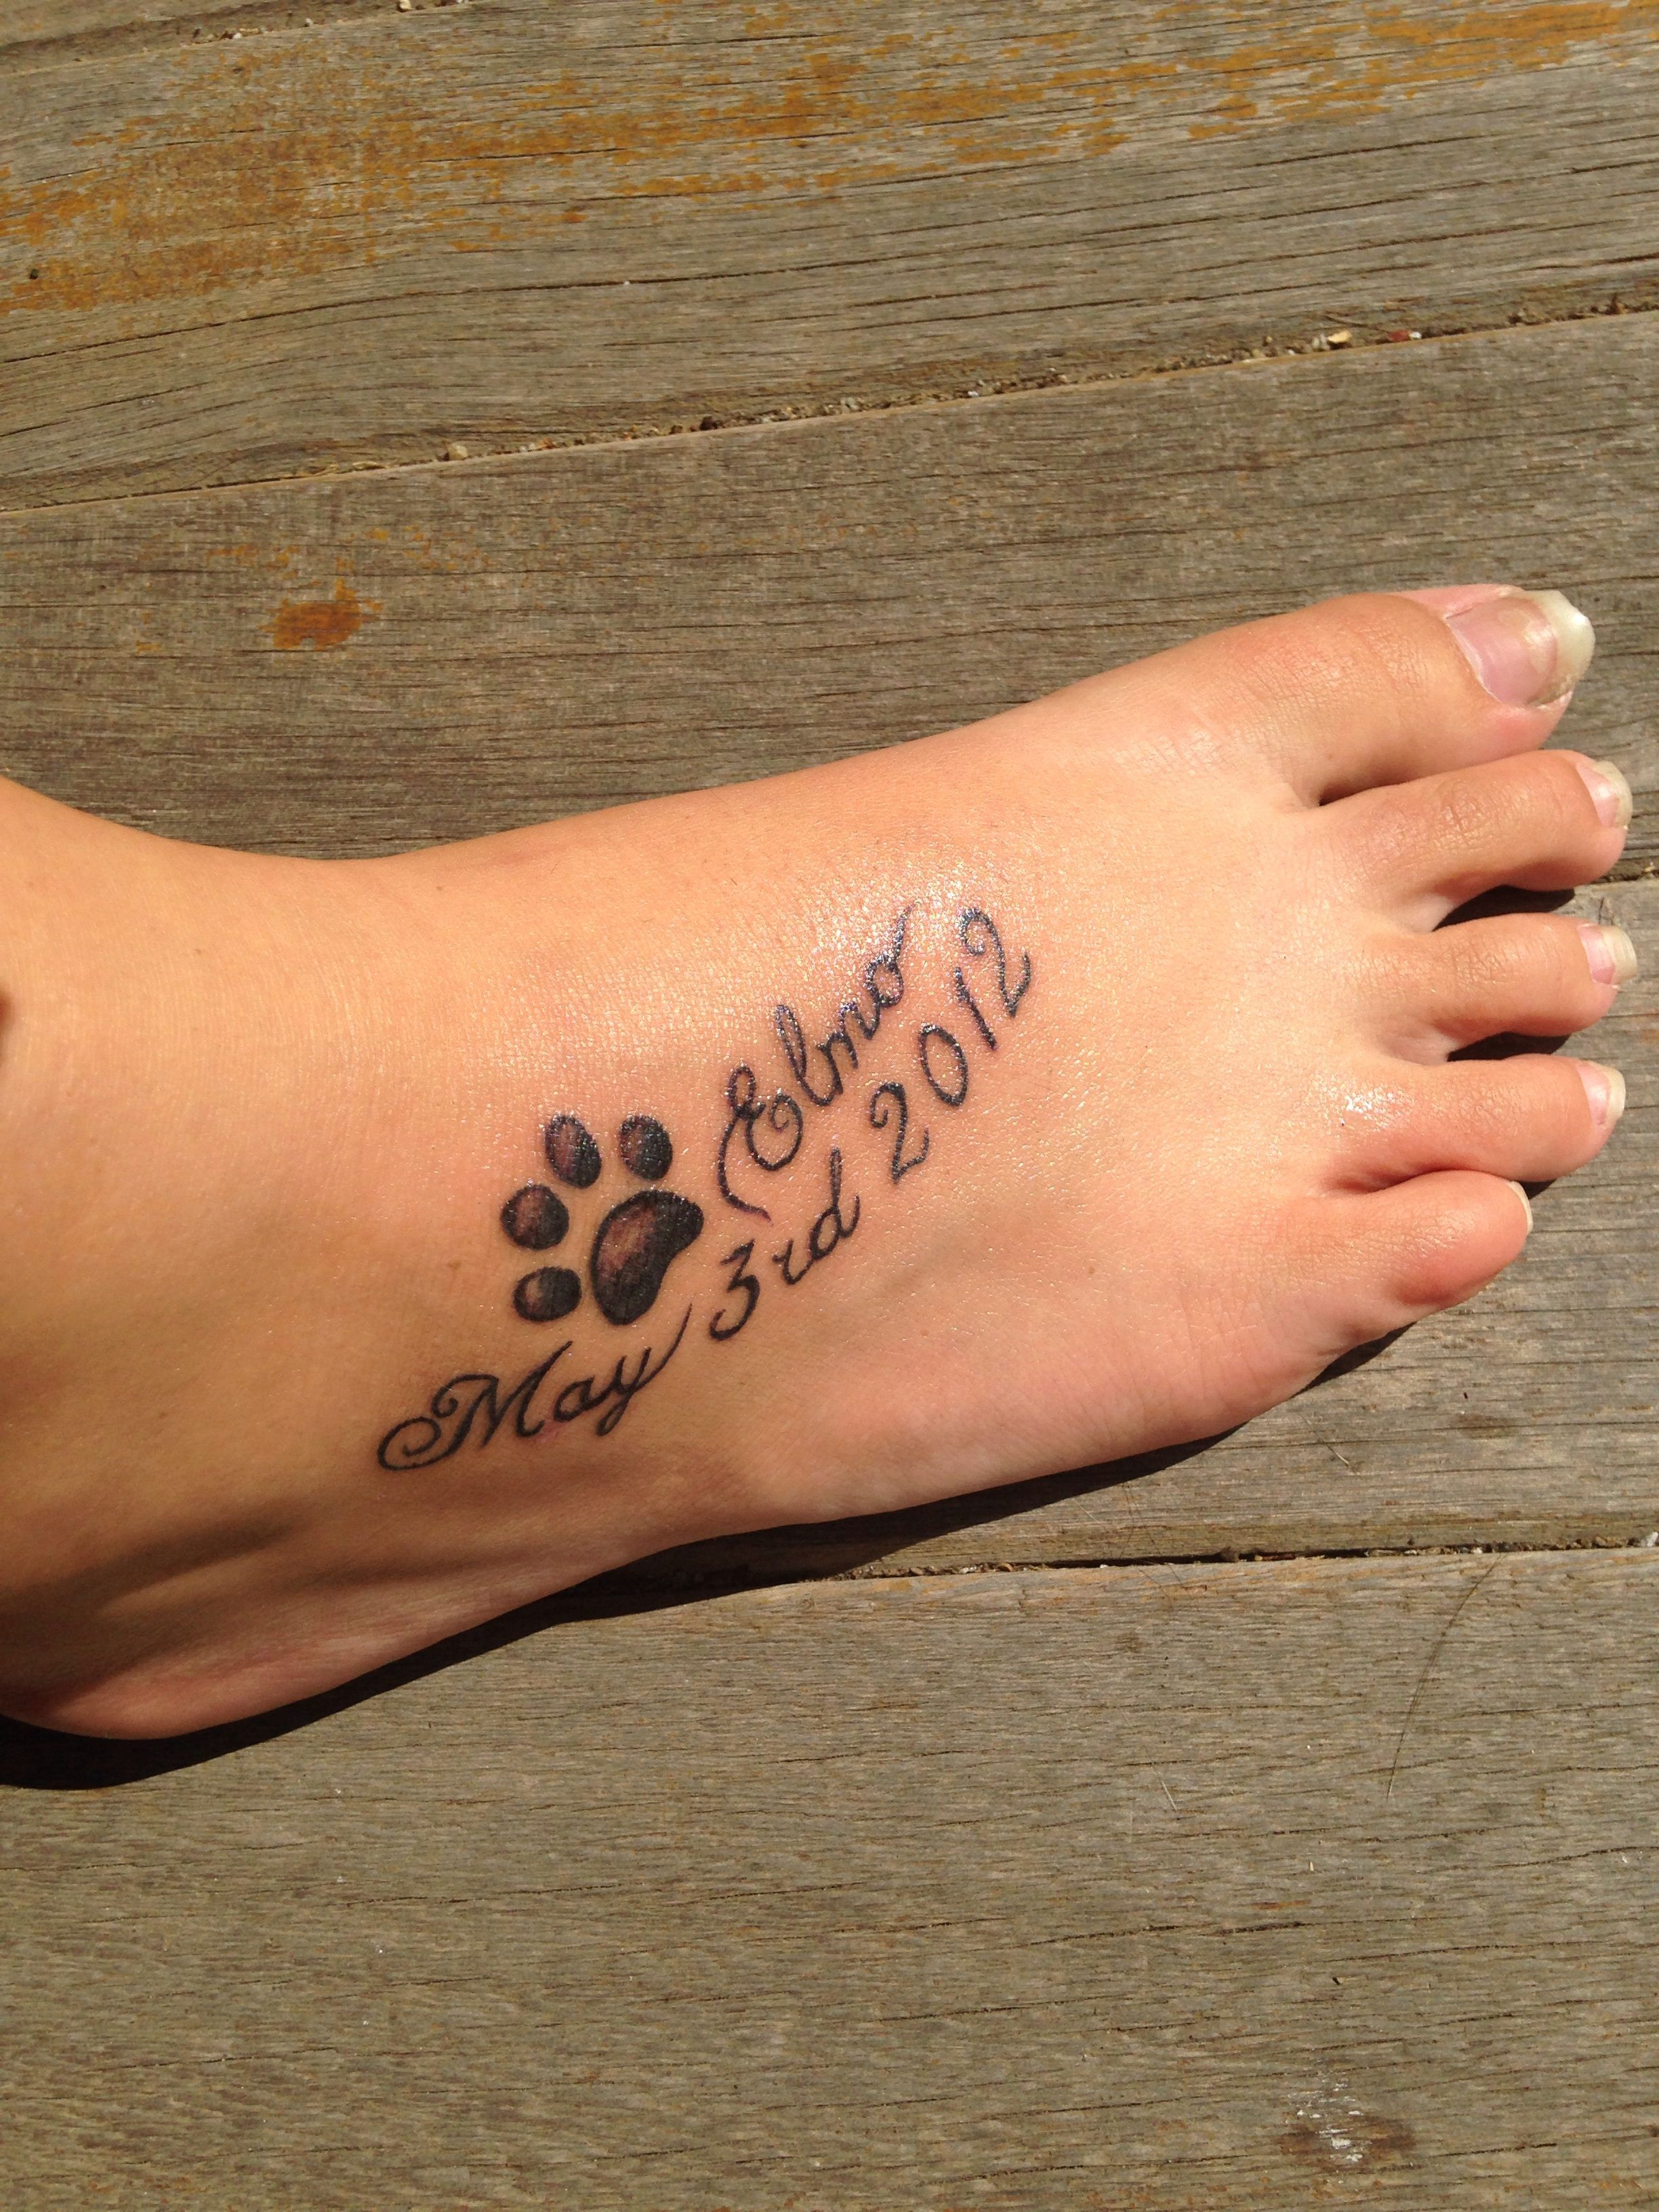 Tattoo For My Dog Who Passed Away A Little Over Two Years Ago Memorial Tattoos Pet Memorial Tattoo Tattoos